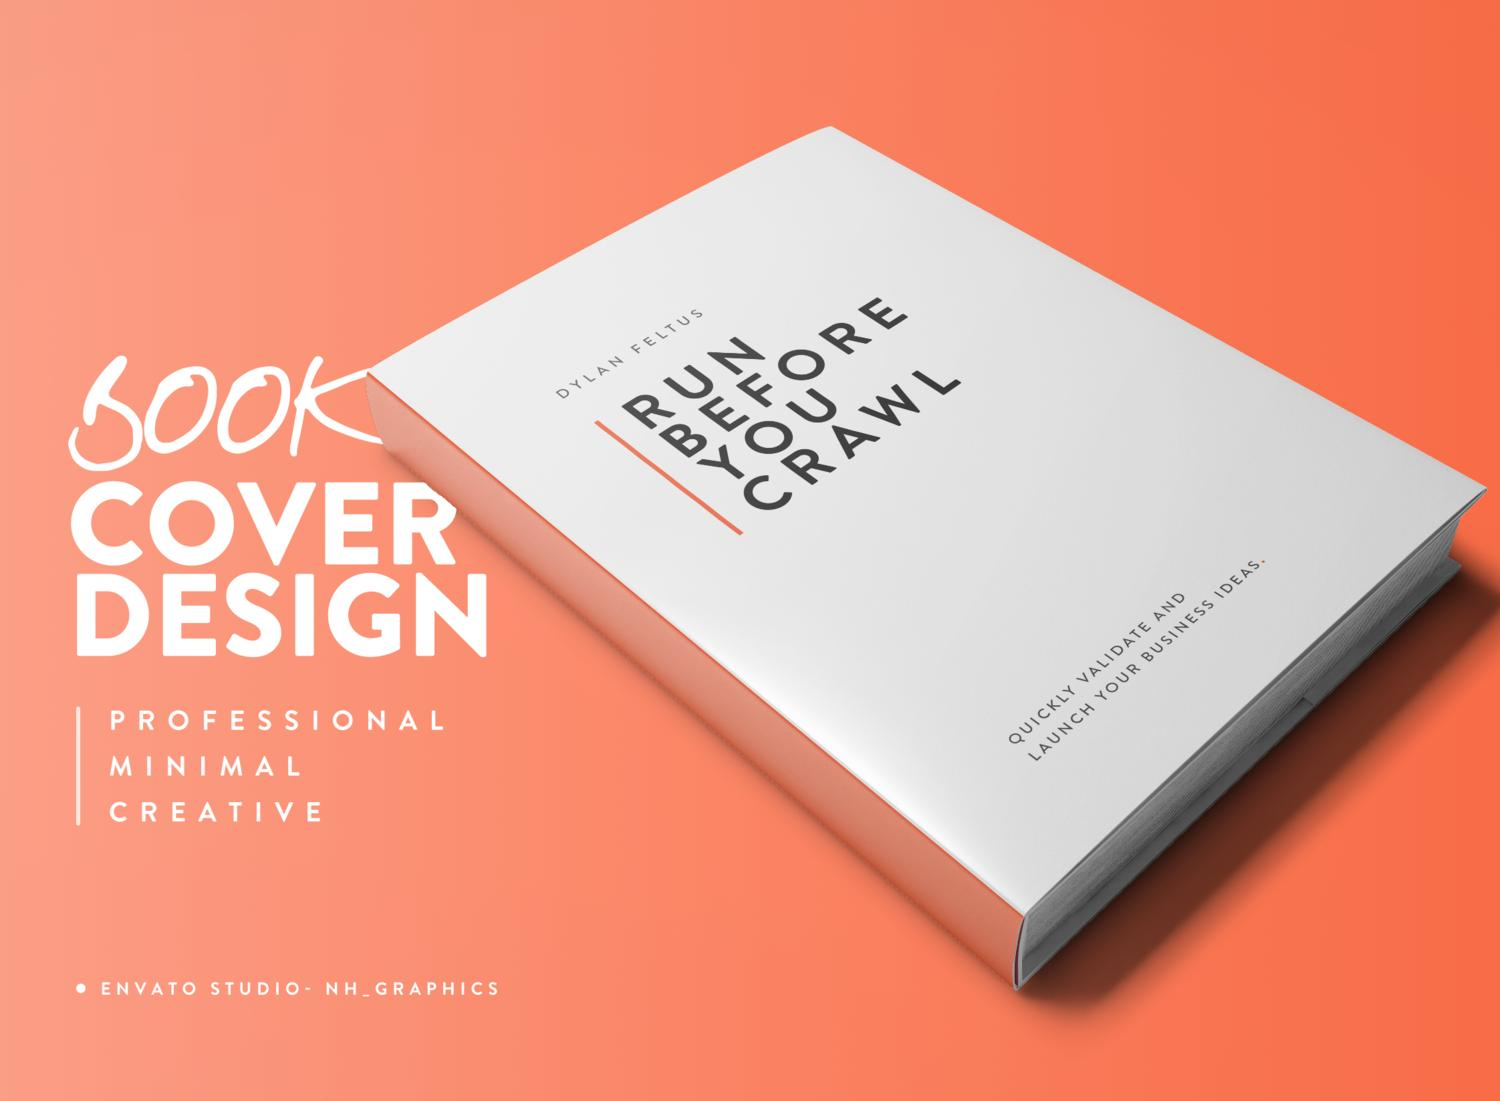 Design Book Covers Software